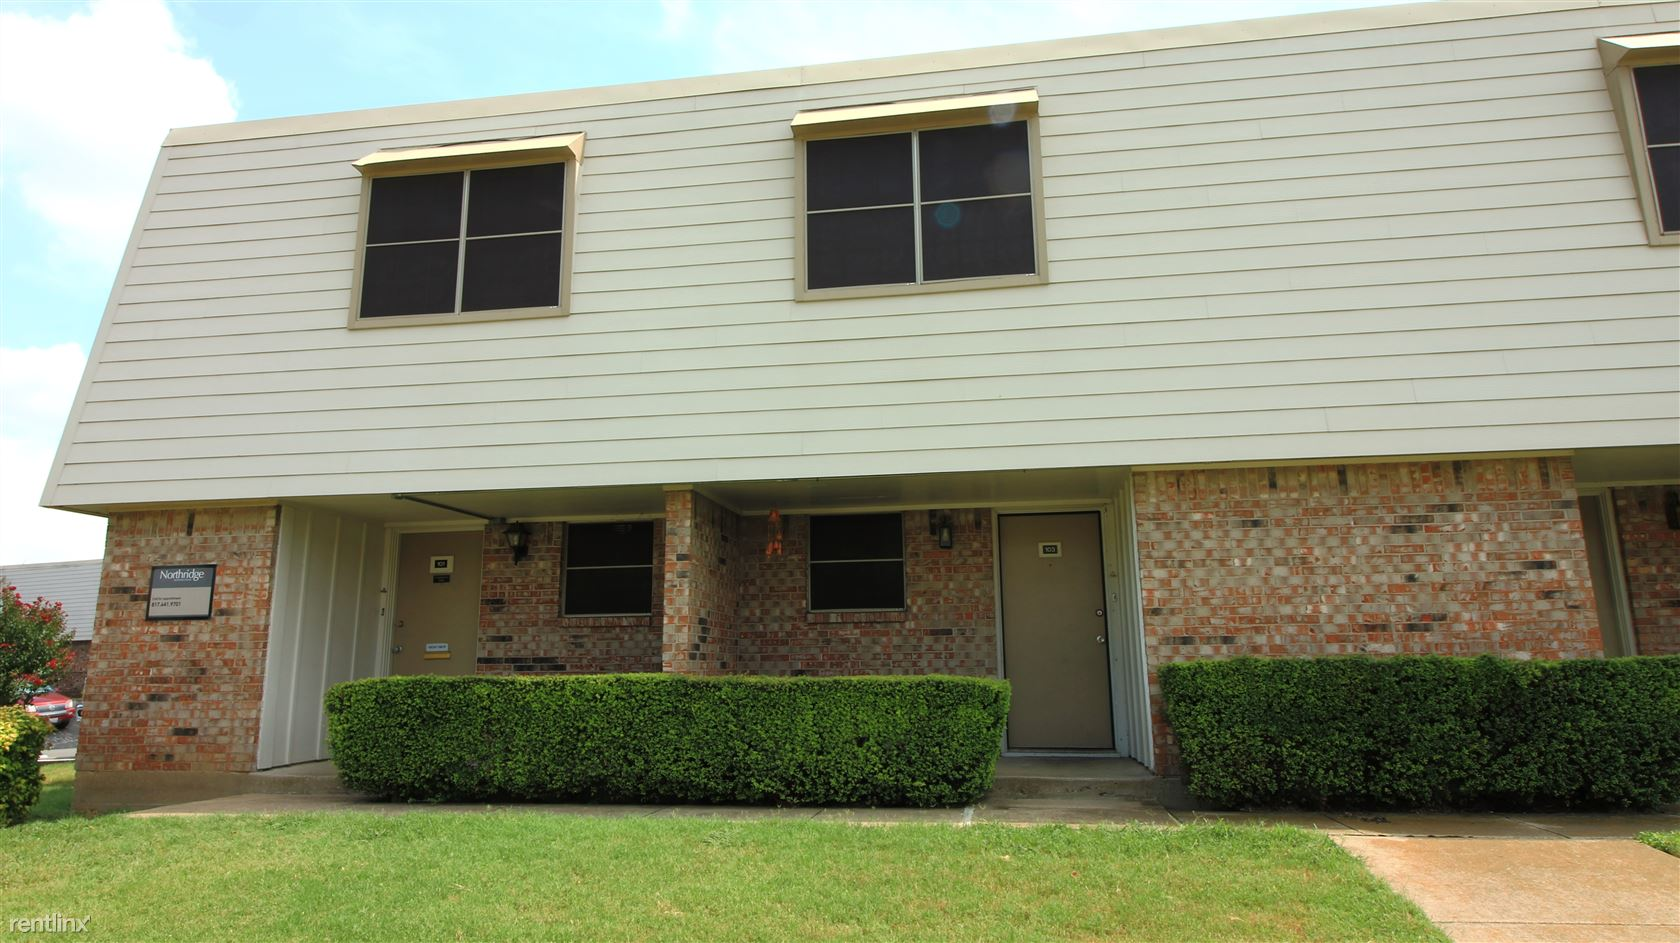 110 Northridge Dr Ofc 300, Cleburne, TX - $1,172